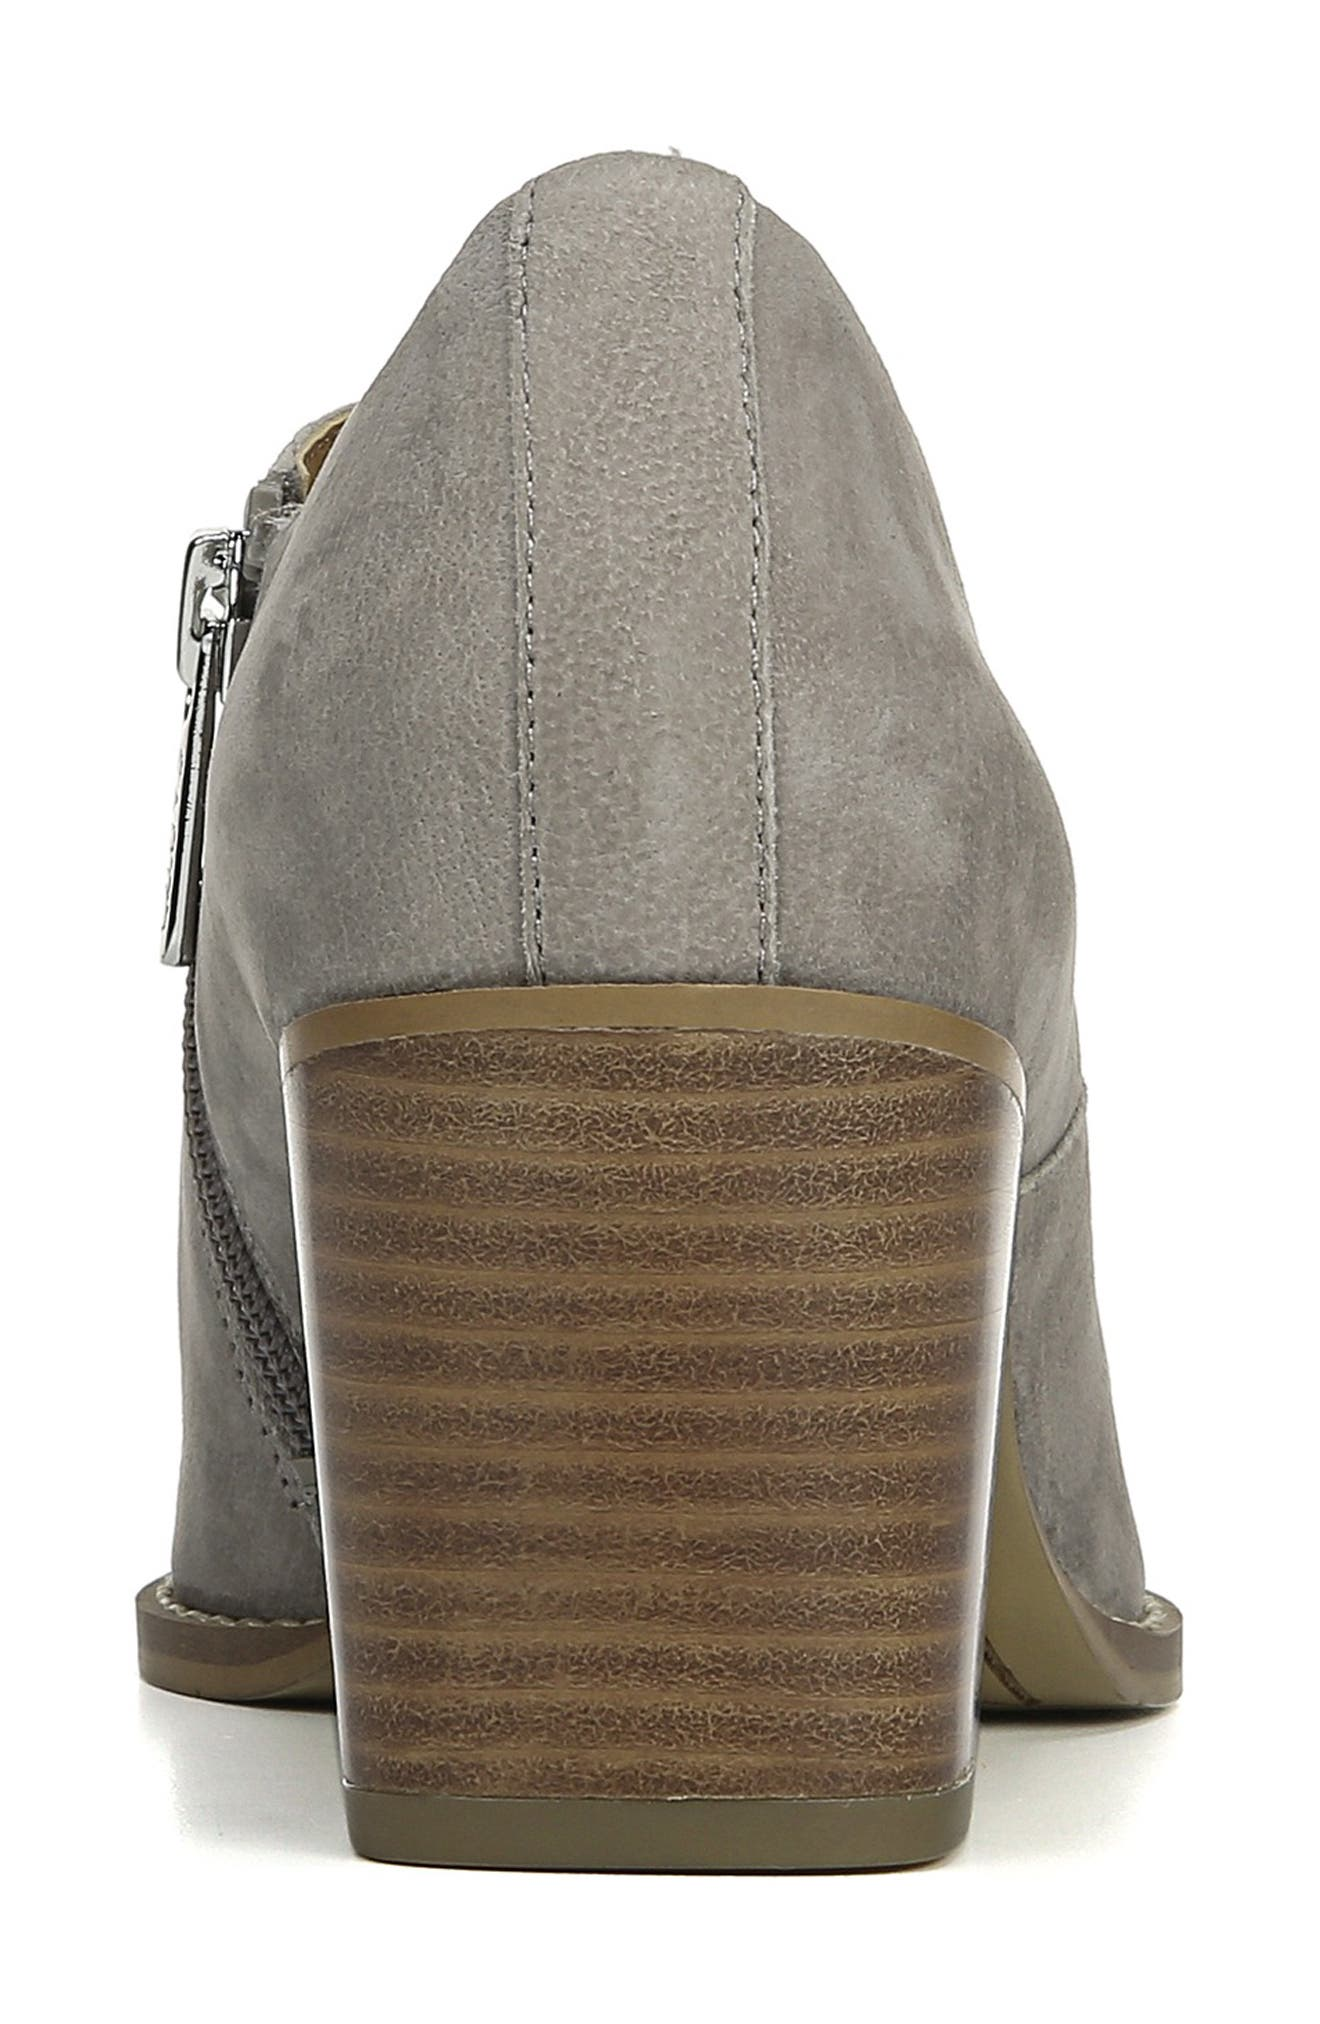 Camella Bootie,                             Alternate thumbnail 7, color,                             GREYSTONE NUBUCK LEATHER